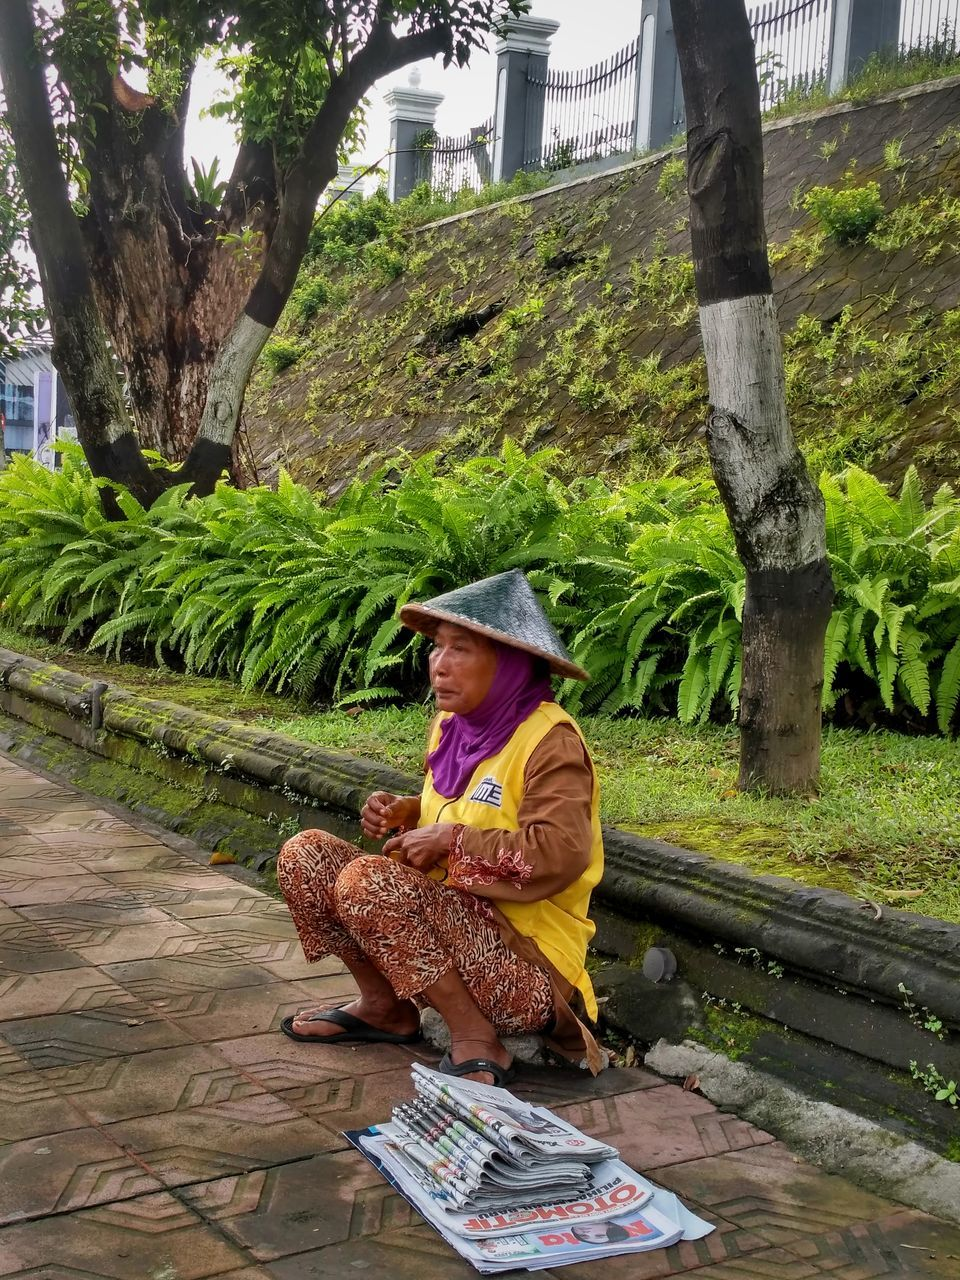 real people, traditional clothing, one person, outdoors, tree, basket, day, lifestyles, animal themes, people